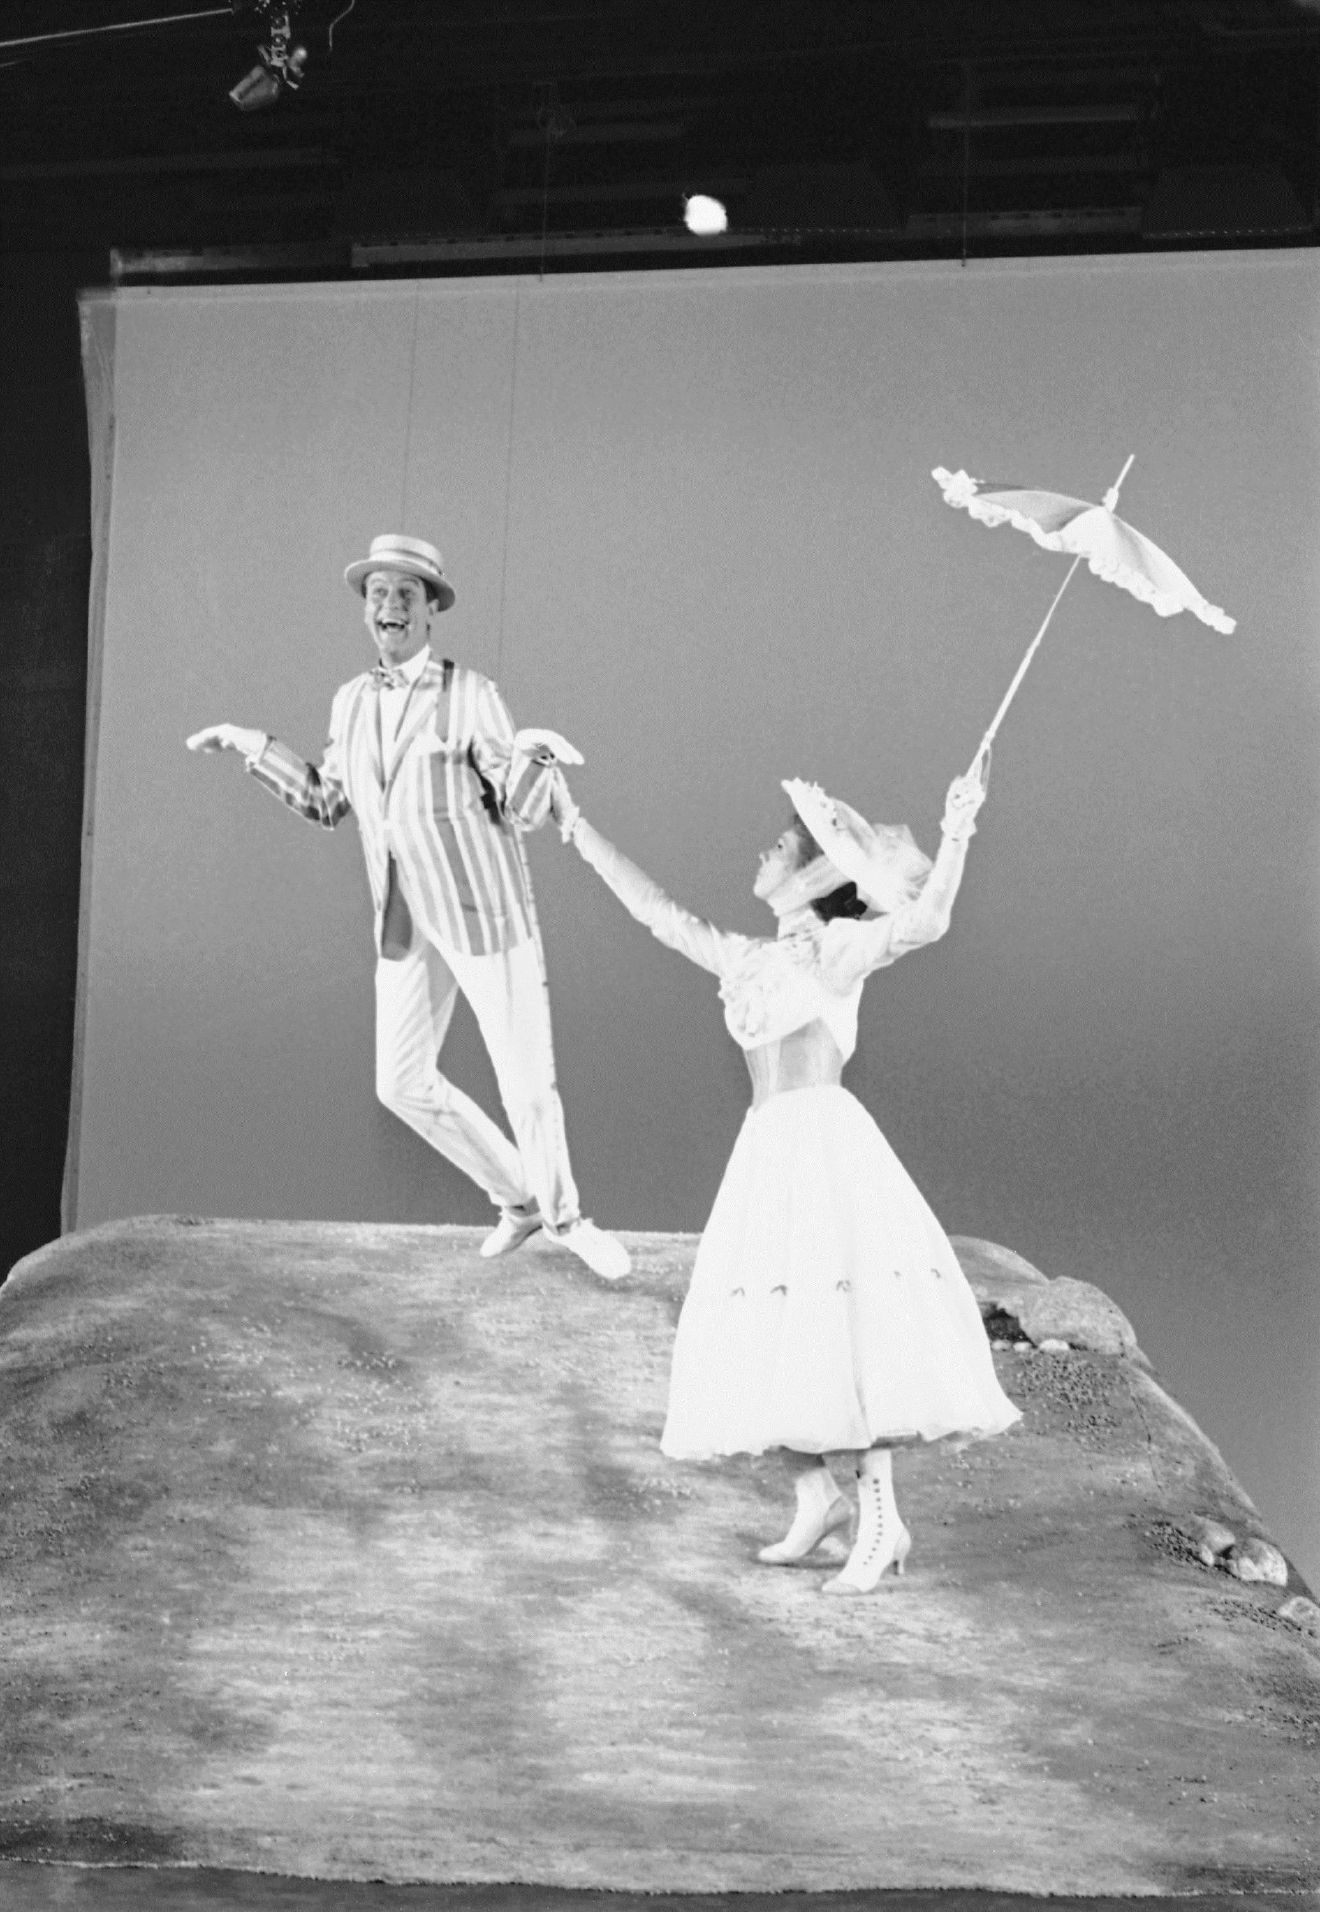 "FILE - In this June 25, 1963, file photo, Dick Van Dyke, left, is airborne during a dance with Julie Andrews, right, during the filming of ""Mary Poppins"" in Los Angeles. The 91-year-old Van Dyke confirmed to several outlets on Dec. 19, 2016, that he will appear in an upcoming sequel to the 1964 film. (AP Photo/Don Brinn, File)"